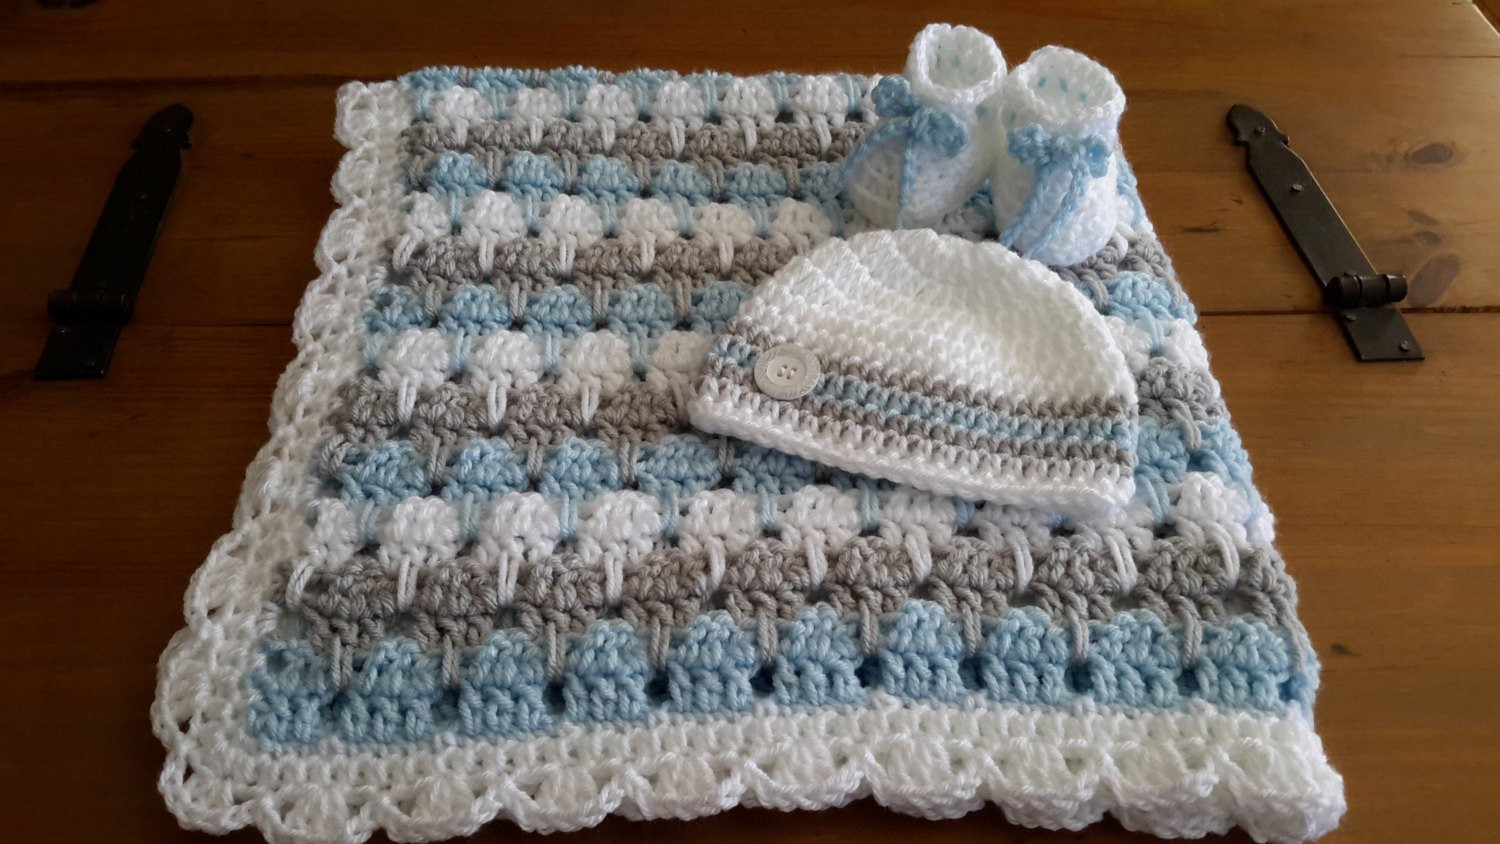 Baby Boy Crochet Blanket Patterns Lovely Baby Boy Blanket Crochet Stripe Crochet Blanket Afghan Of Baby Boy Crochet Blanket Patterns New Beautiful Baby Boy Blanket Crochet Pattern for Pram